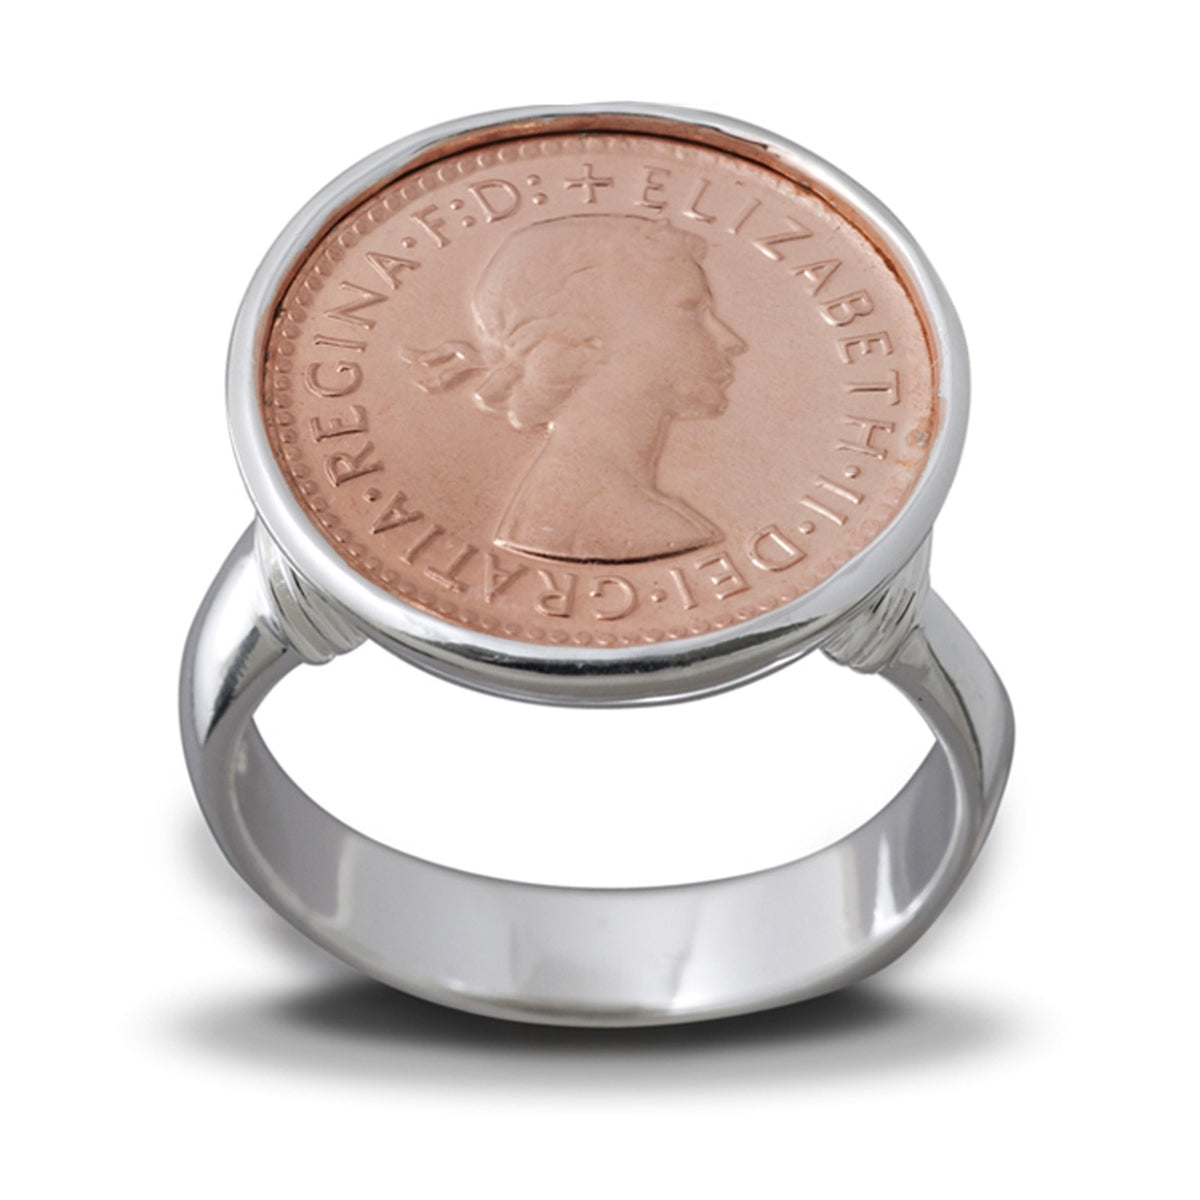 3 Pence Silver And Rose Gold